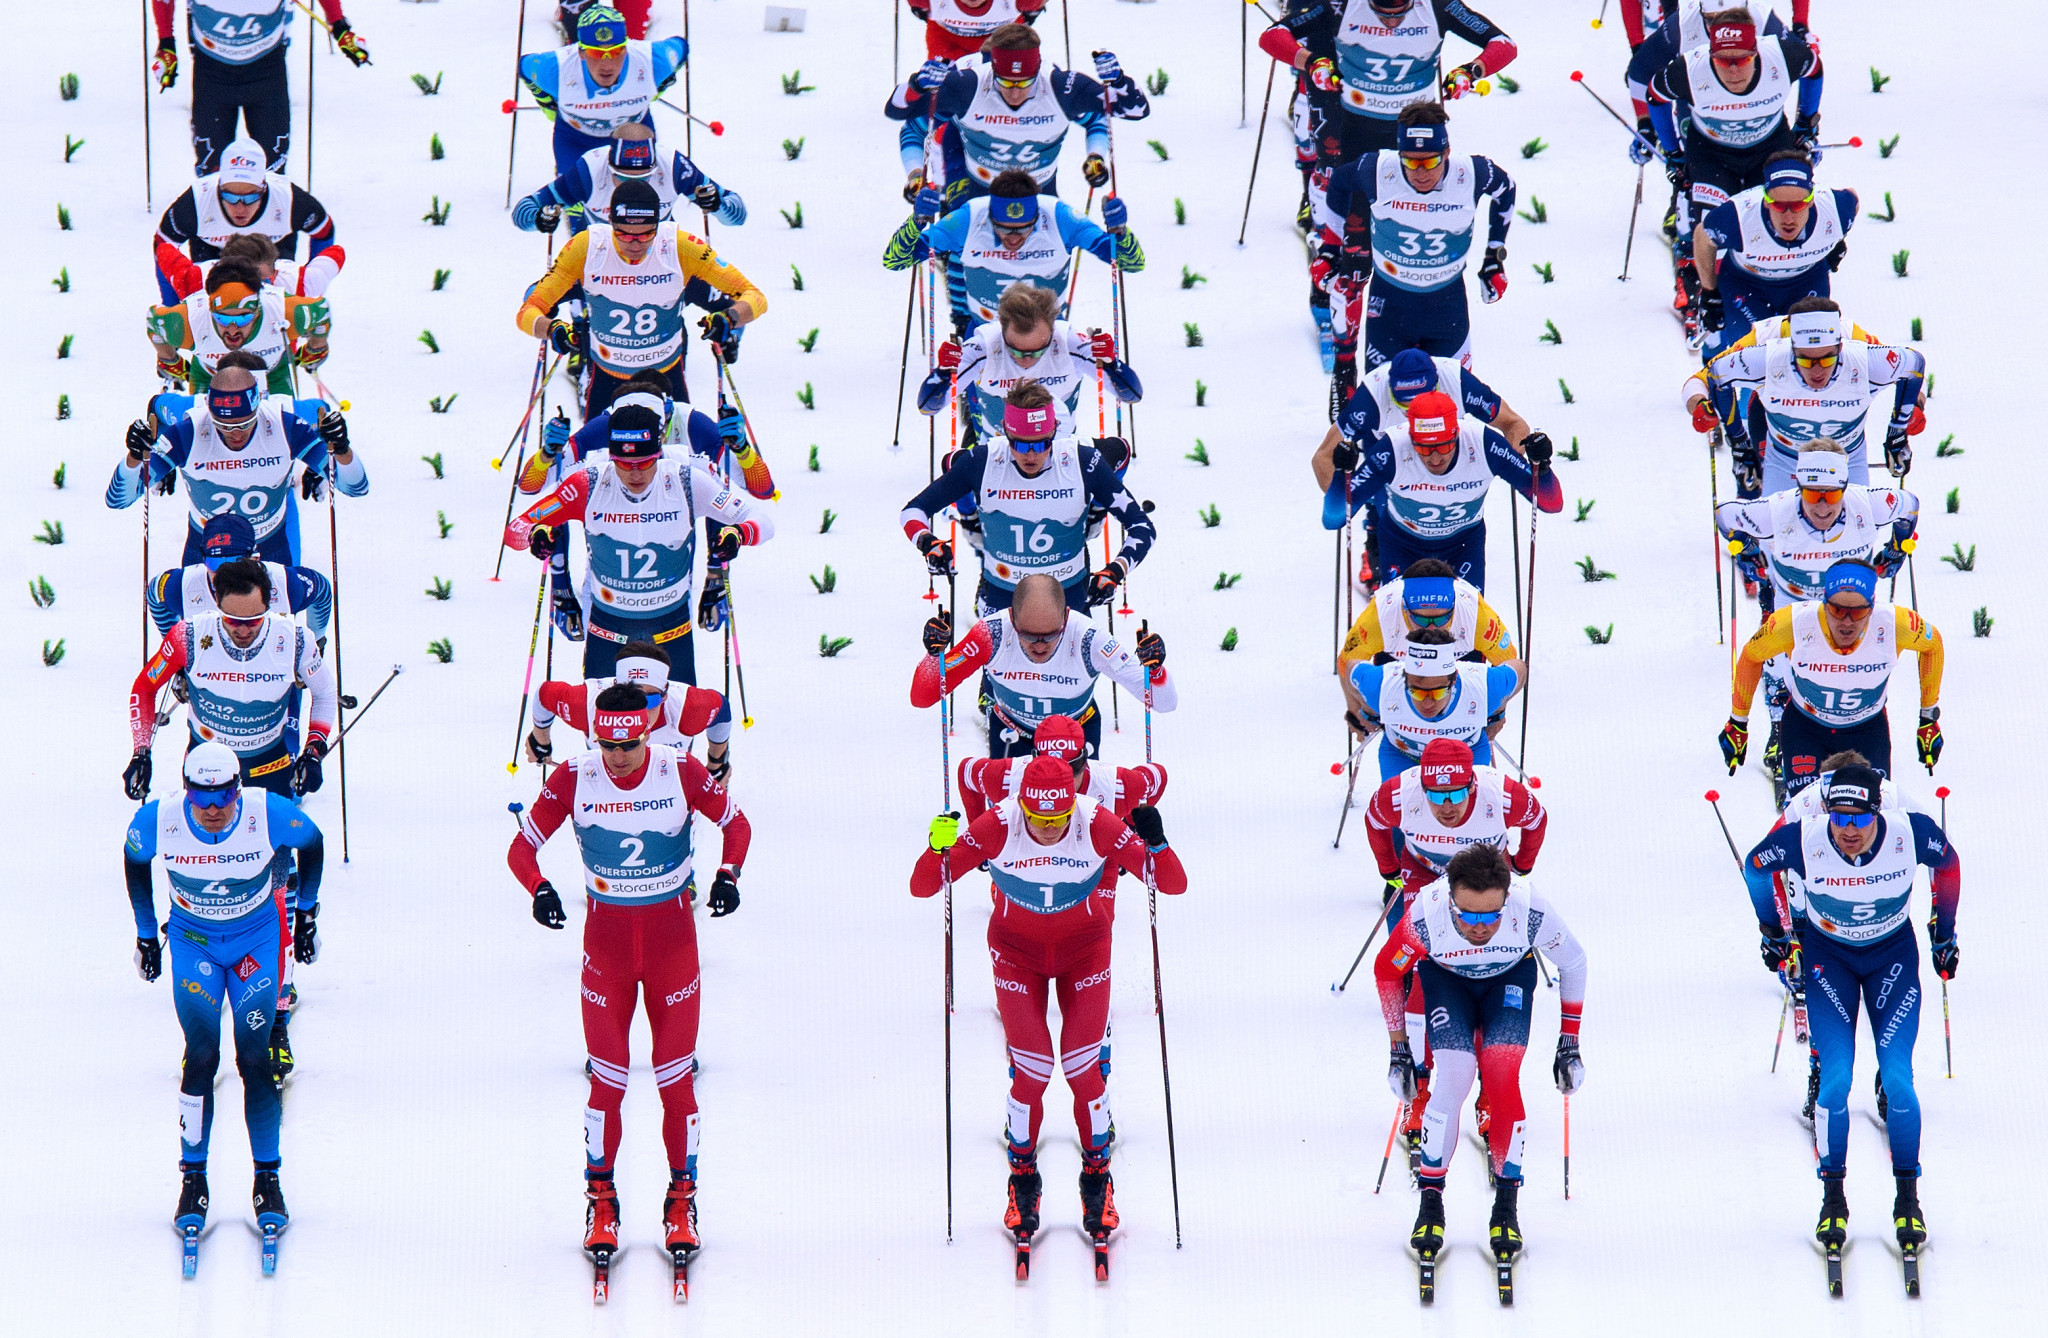 FIS holds debrief with 2021 Nordic World Ski Championships host Oberstdorf